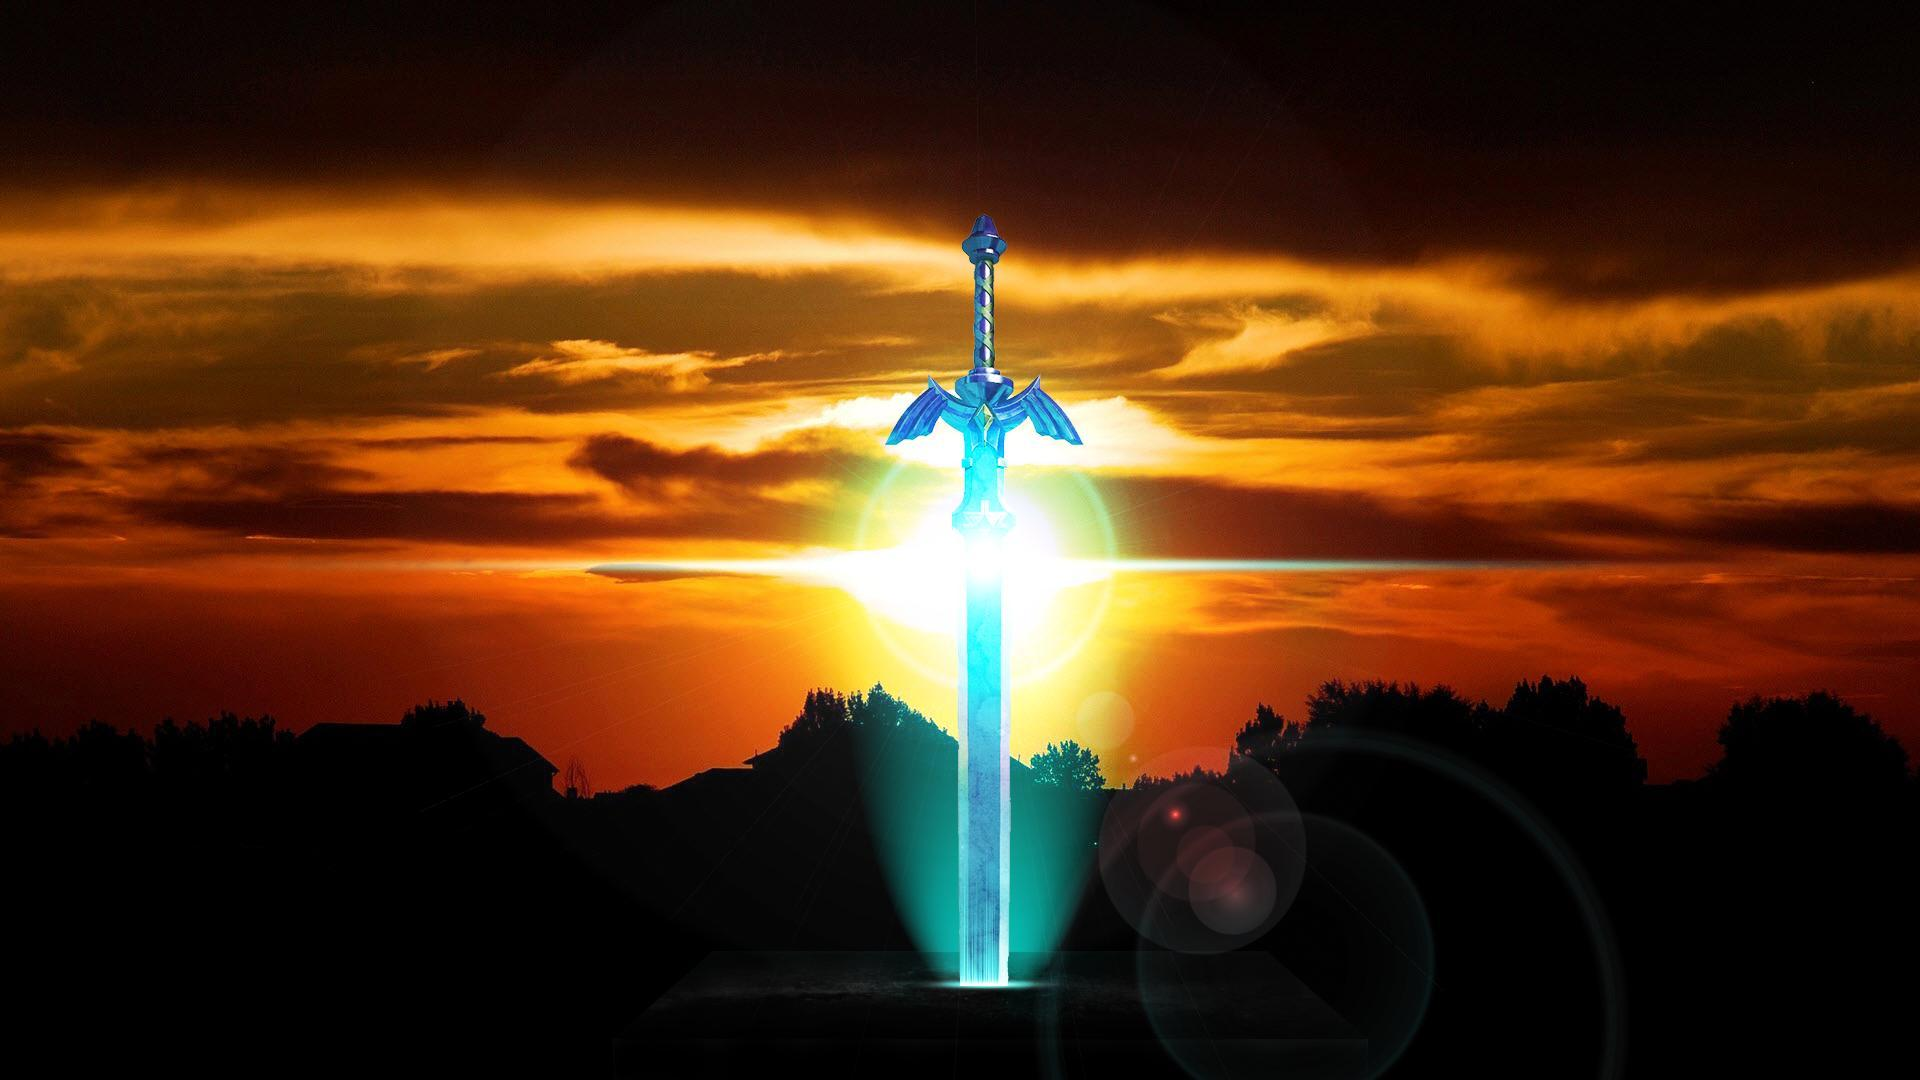 Wallpapers For > Master Sword Wallpaper